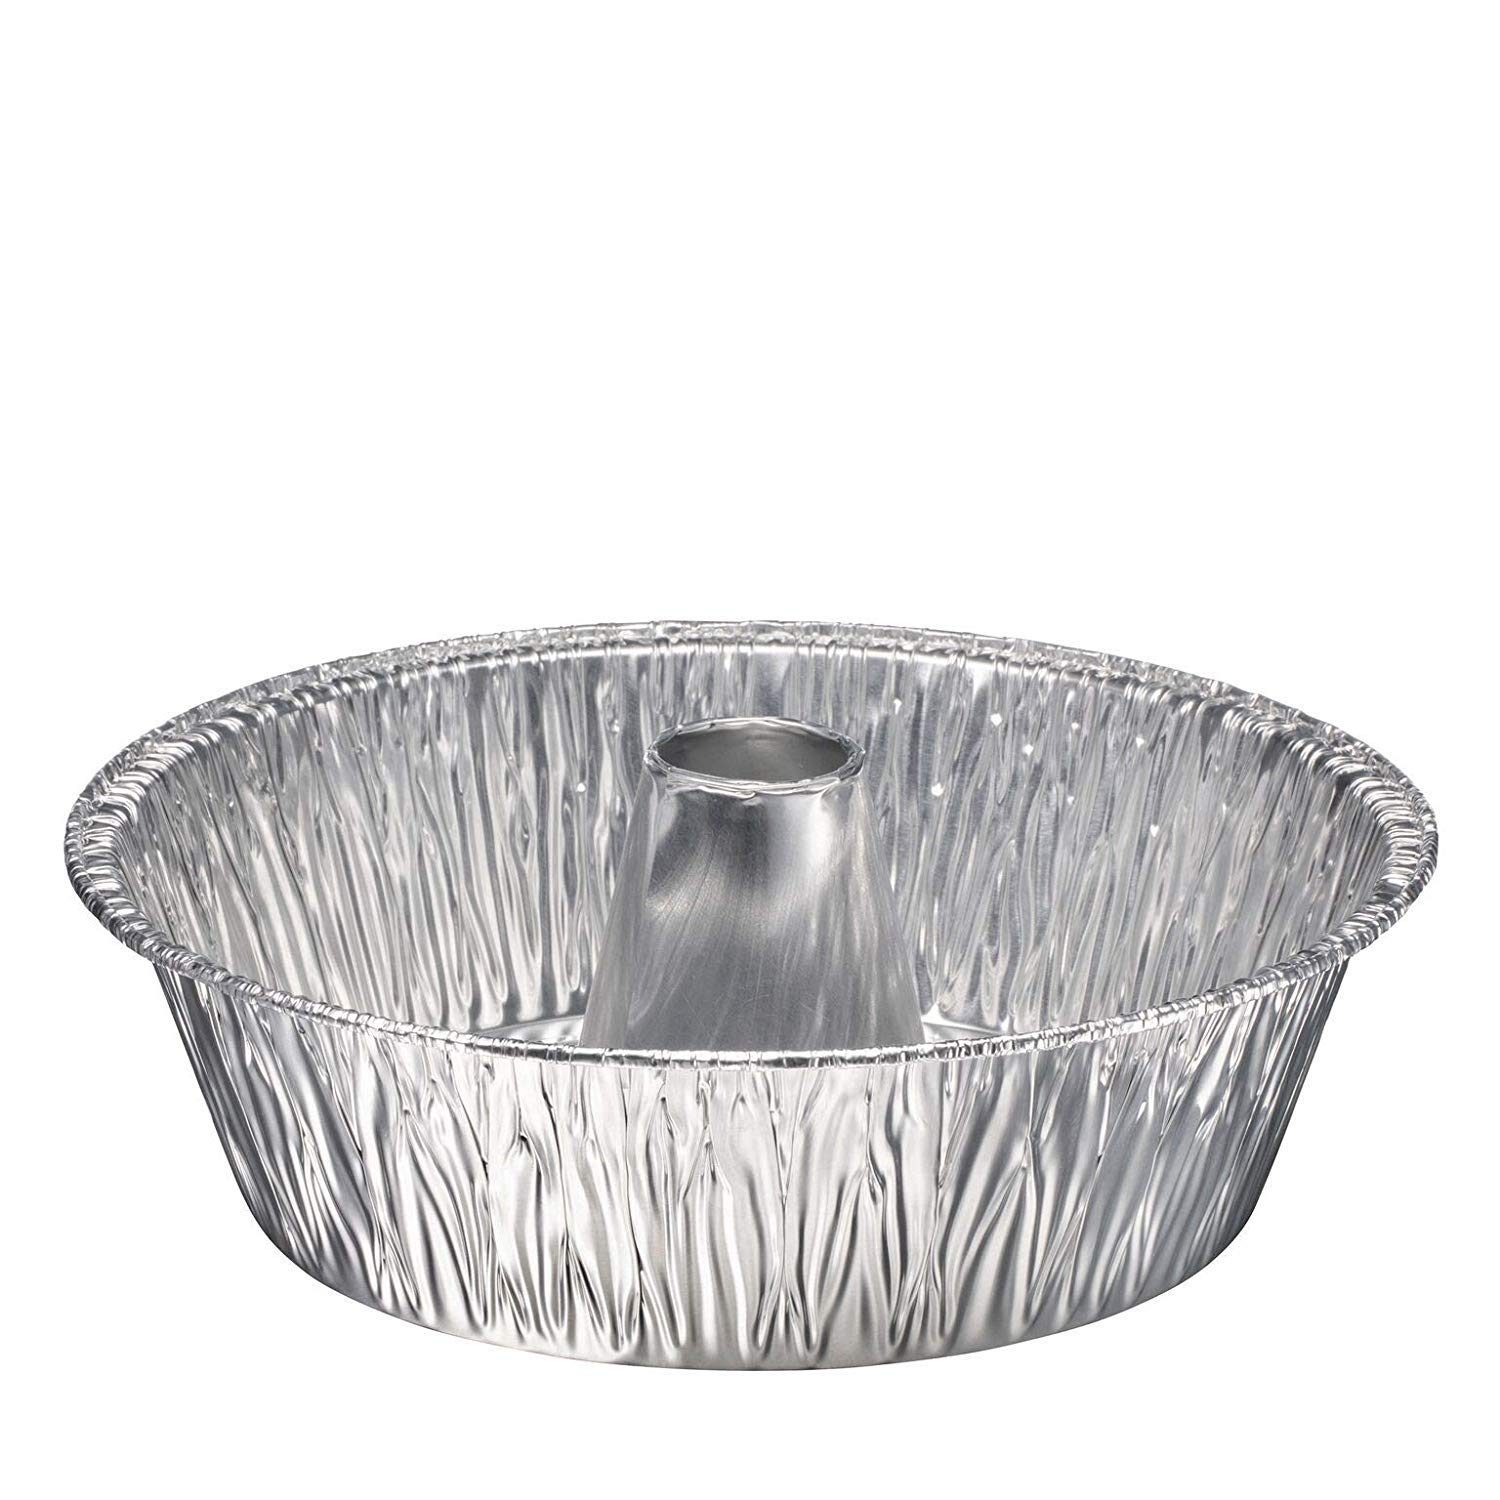 Disposable Round Cake Baking Pans - Aluminum Foil Bundt Tube Tin Great for Baking Decorative Display, Parties 8'' Round (50 Pans, 8-inch round)